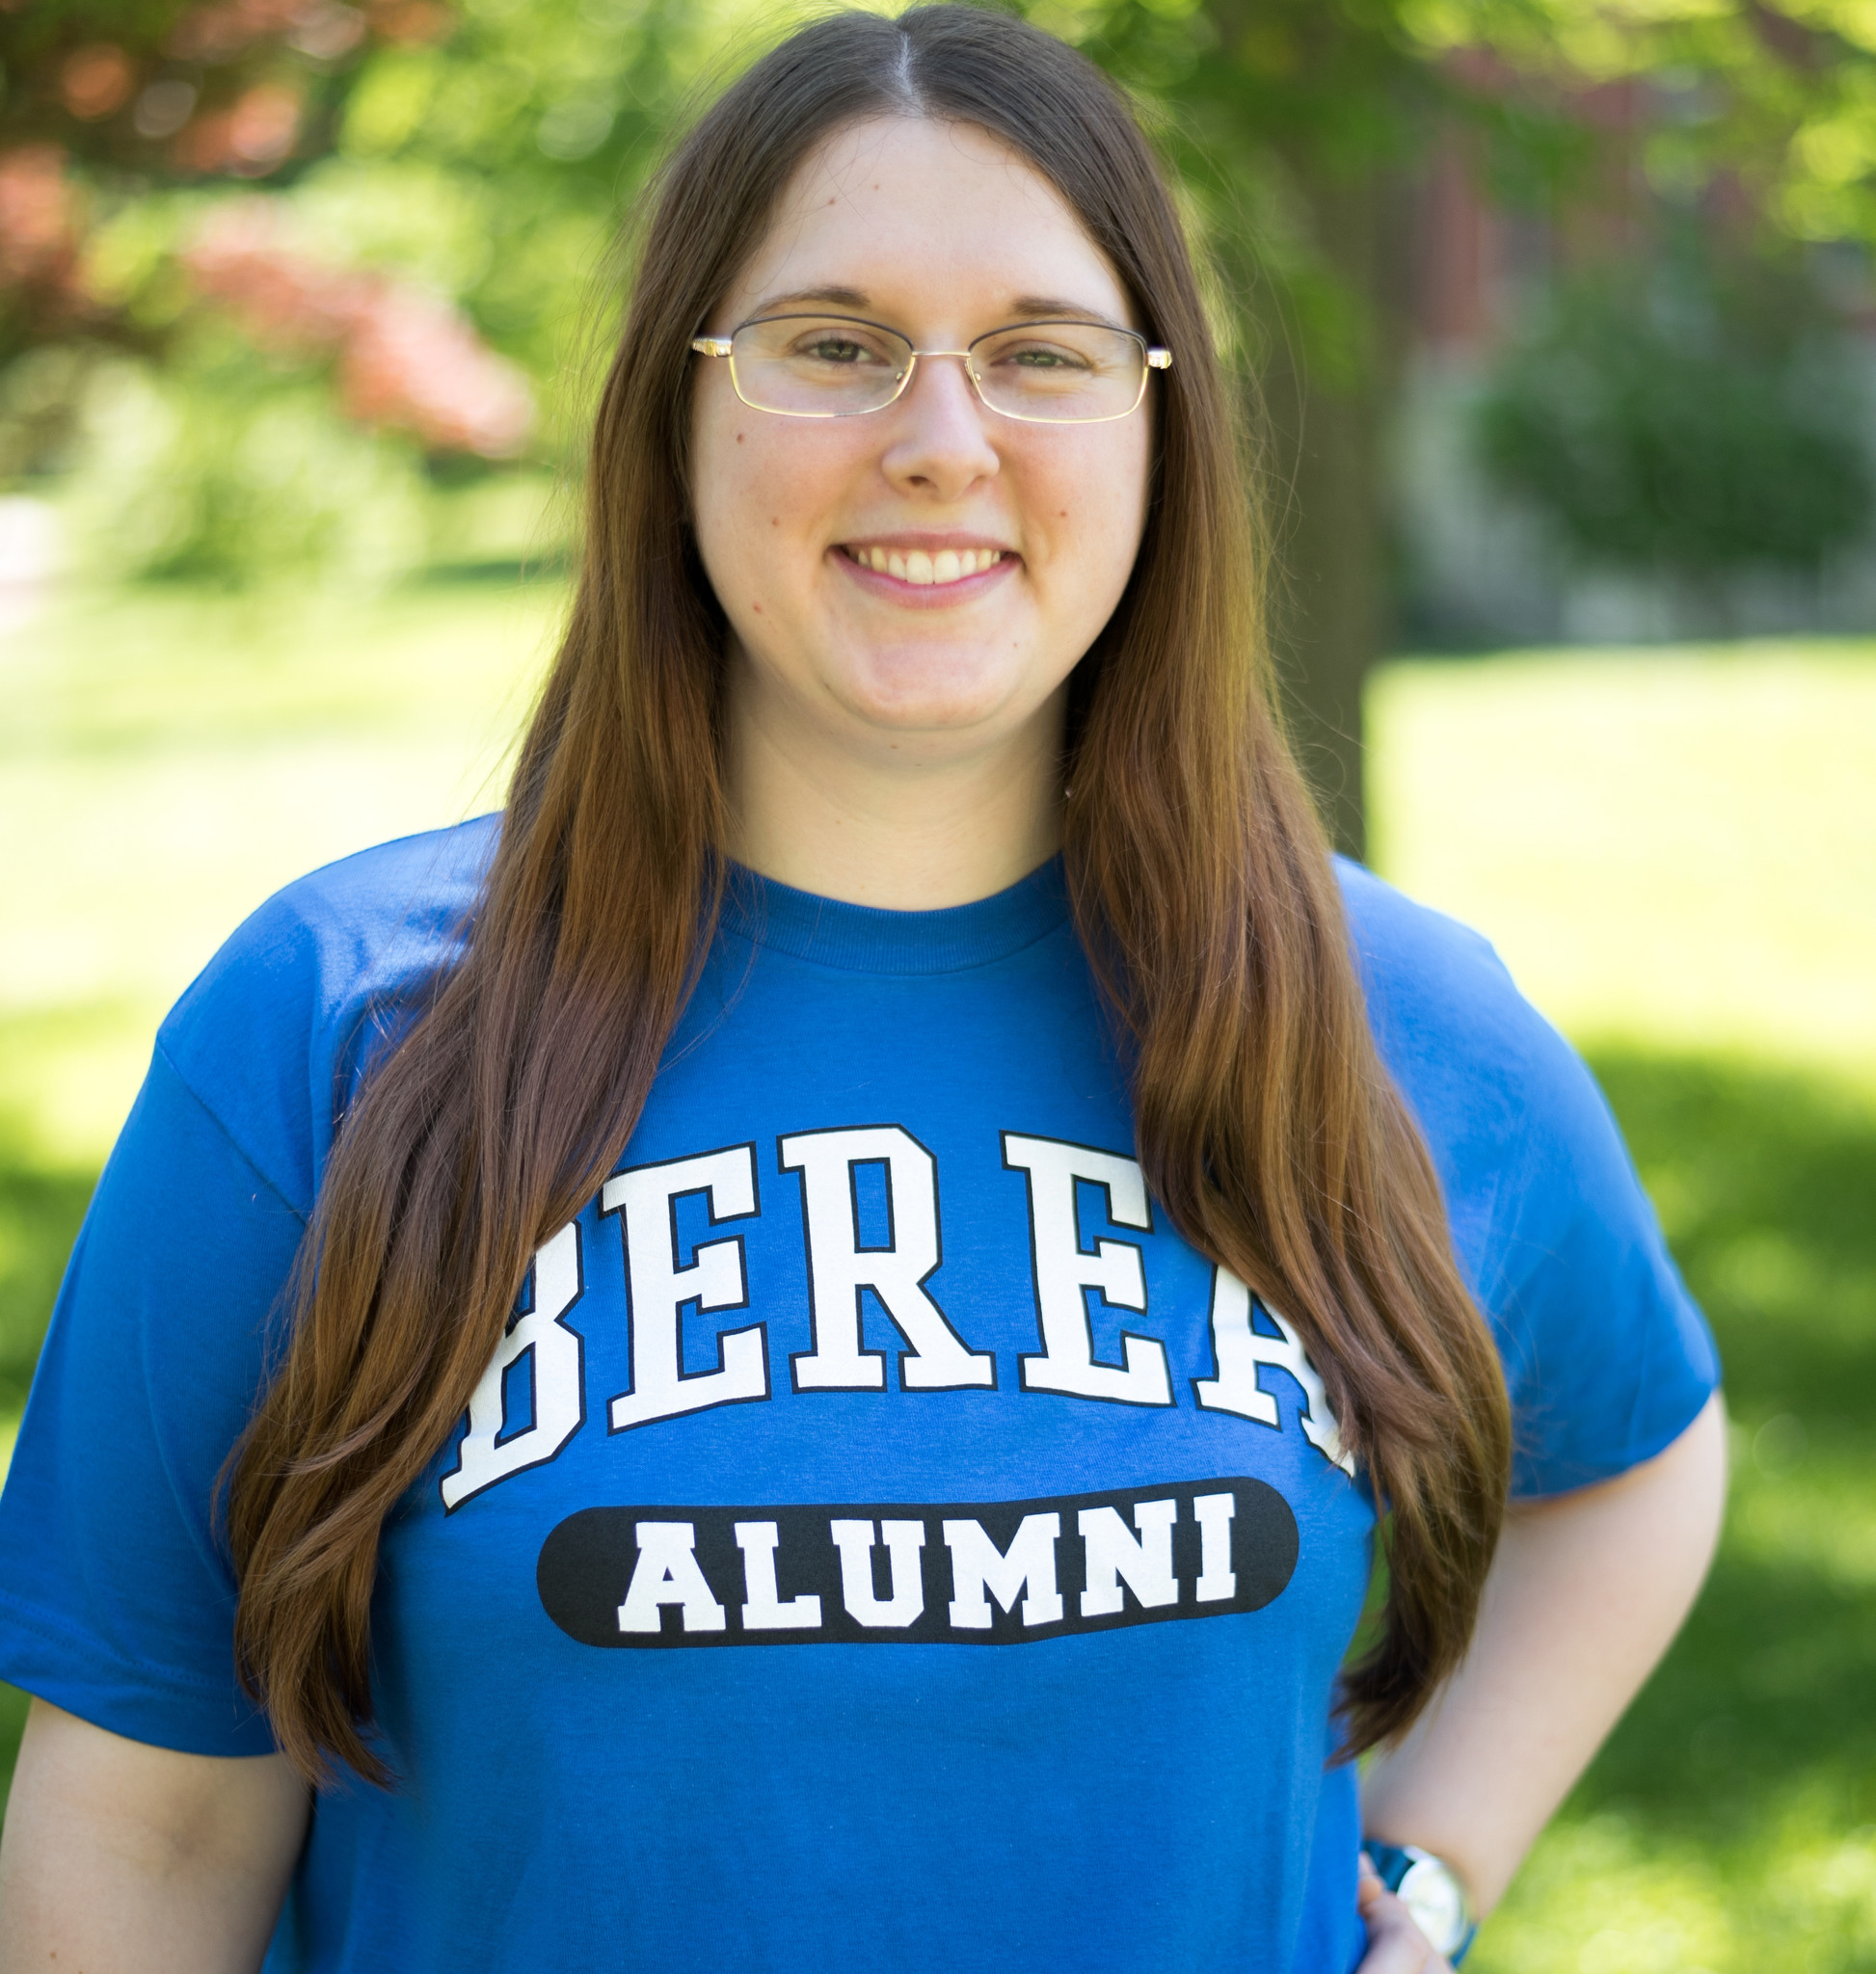 kaitlyn berea college shoppe hey my is kaitlyn i m 24 and a sophomore here at berea i am majoring in education as well my plans after i graduate are somewhere along the lines